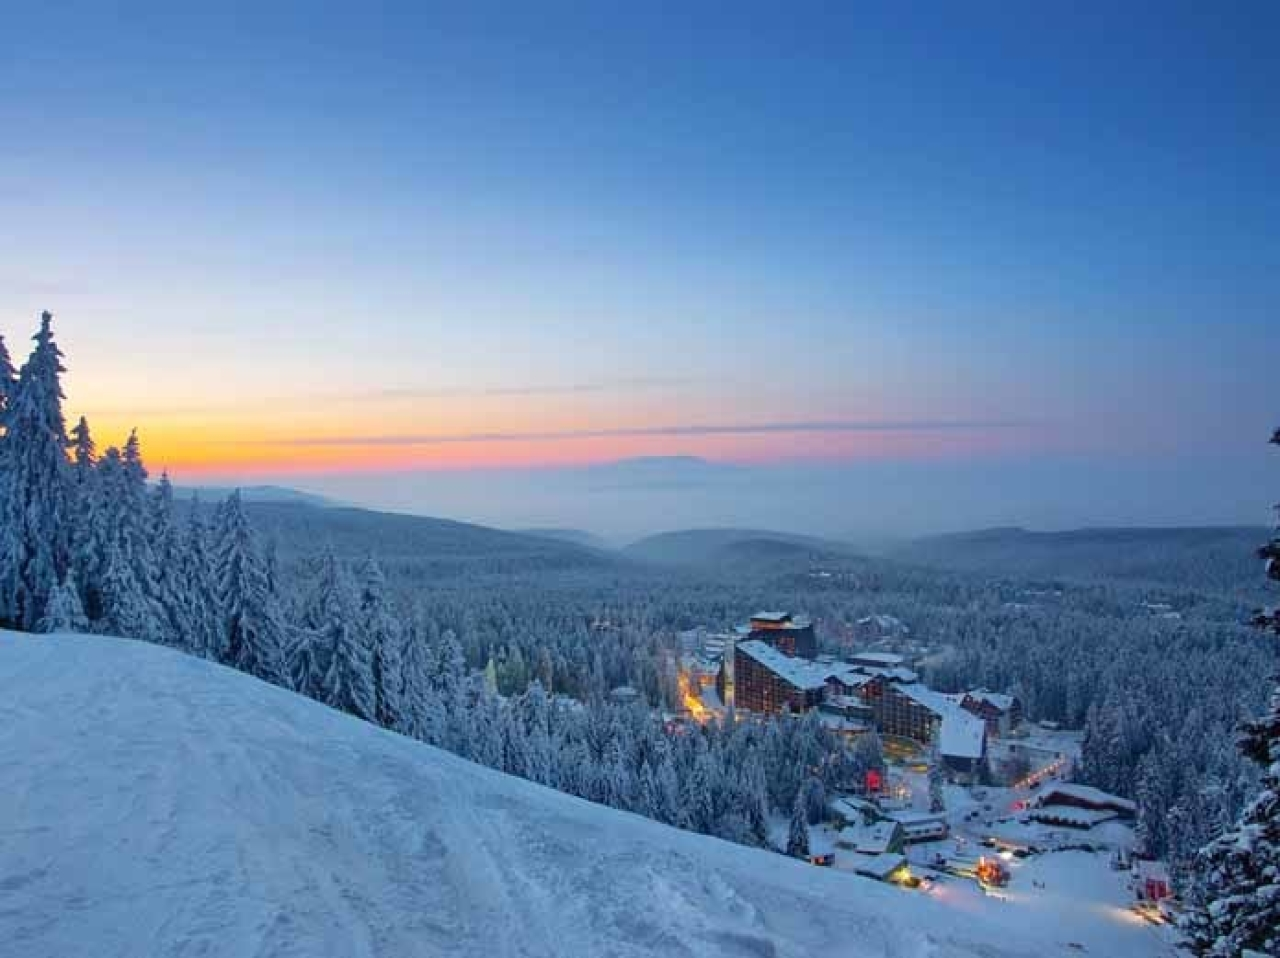 Brief history of Borovets